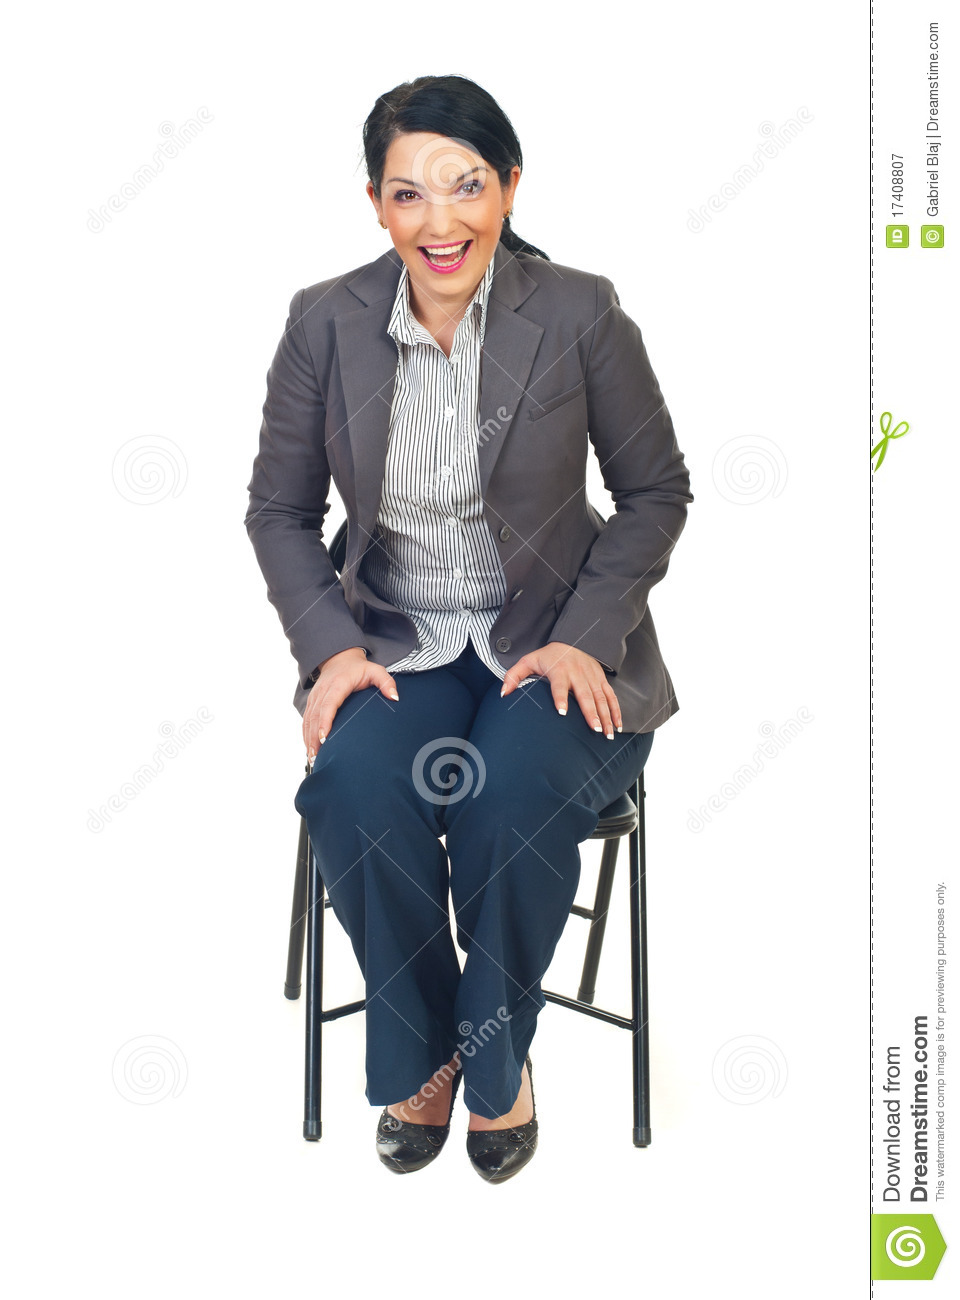 Executive Woman Sit On Chair And Laughing Out Loud Royalty  : executive woman sit chair laughing out loud 17408807 from dreamstime.com size 960 x 1300 jpeg 173kB